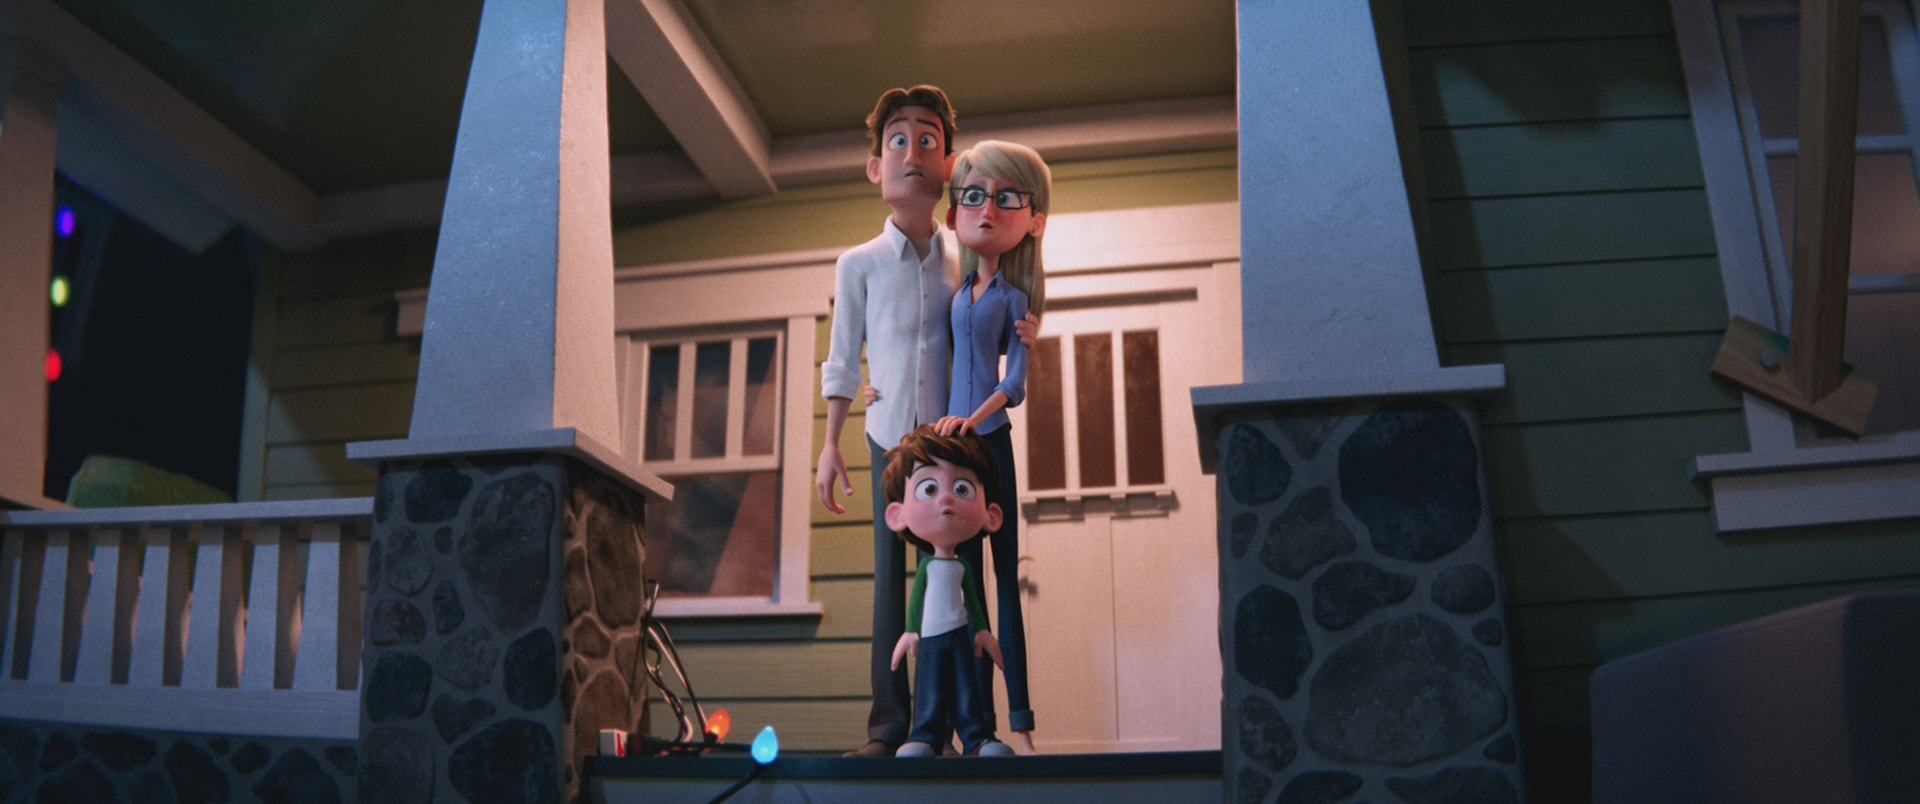 Henry Gardner voiced by TY BURRELL, Nate Gardner voiced by ANTON STARKMAN and Sarah Gardner voiced by JENNIFER ANISTON